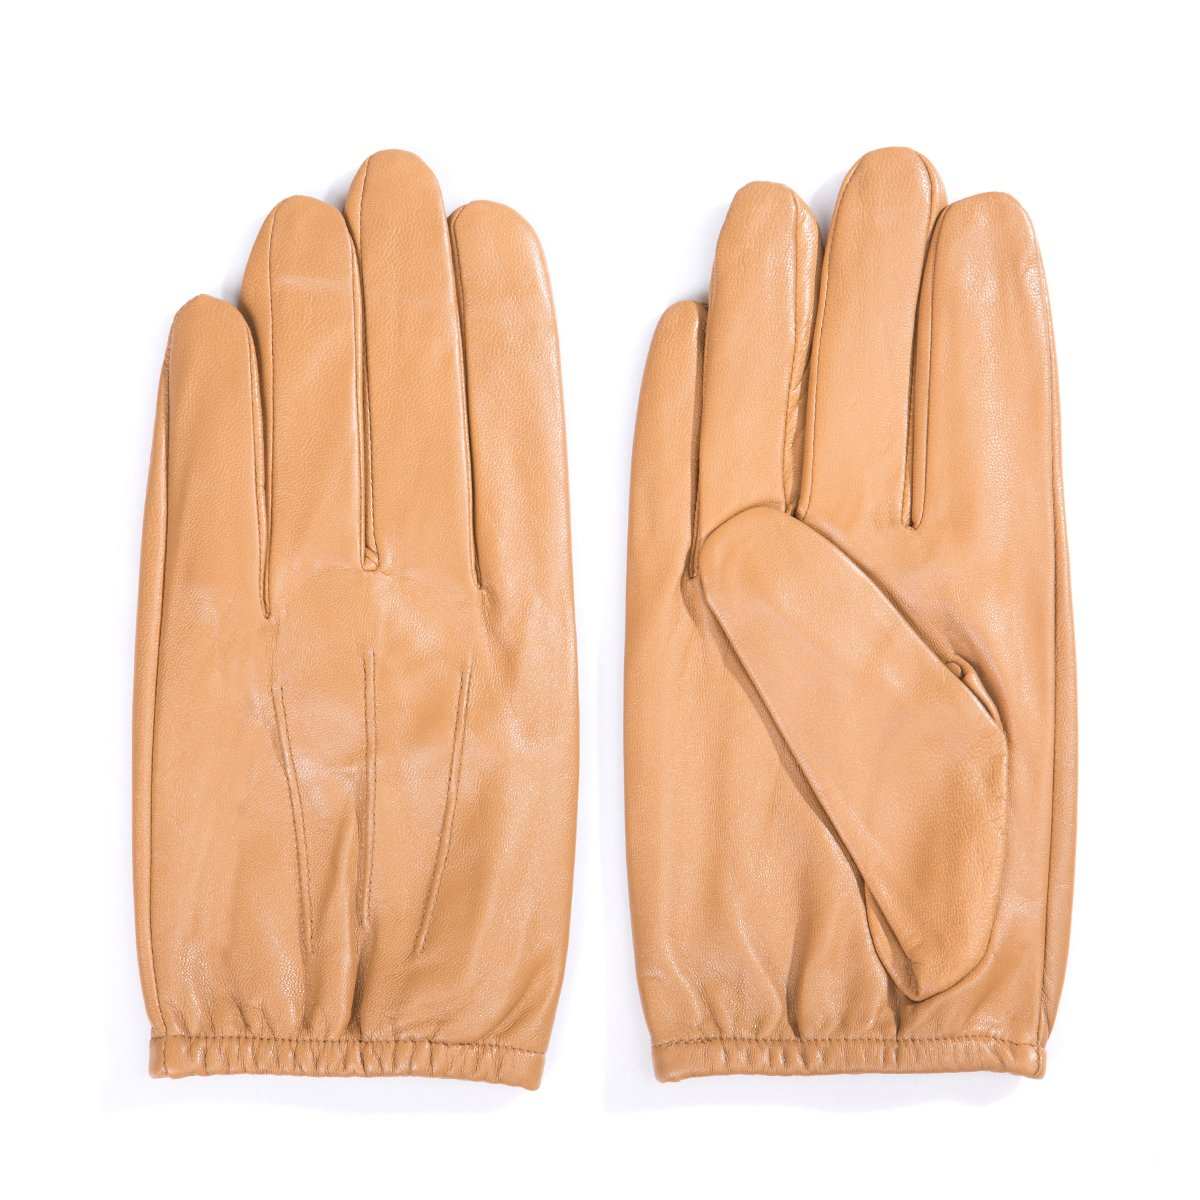 MATSU Mens Driving Leather Gloves For Motorcycle,Police,Lambskin Leather M1063(M,Camel)